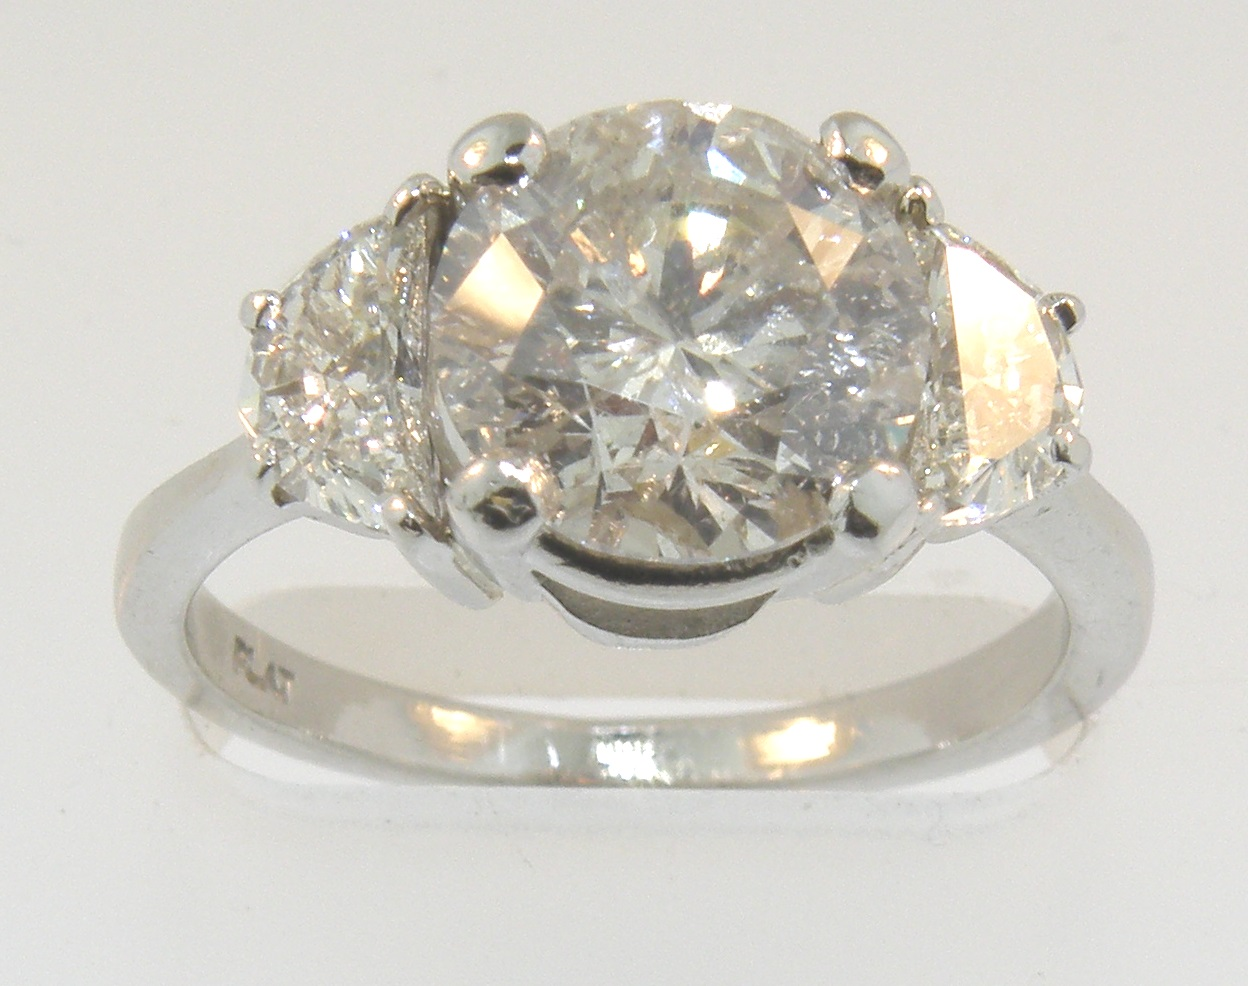 2.63 Carat Diamond Ring